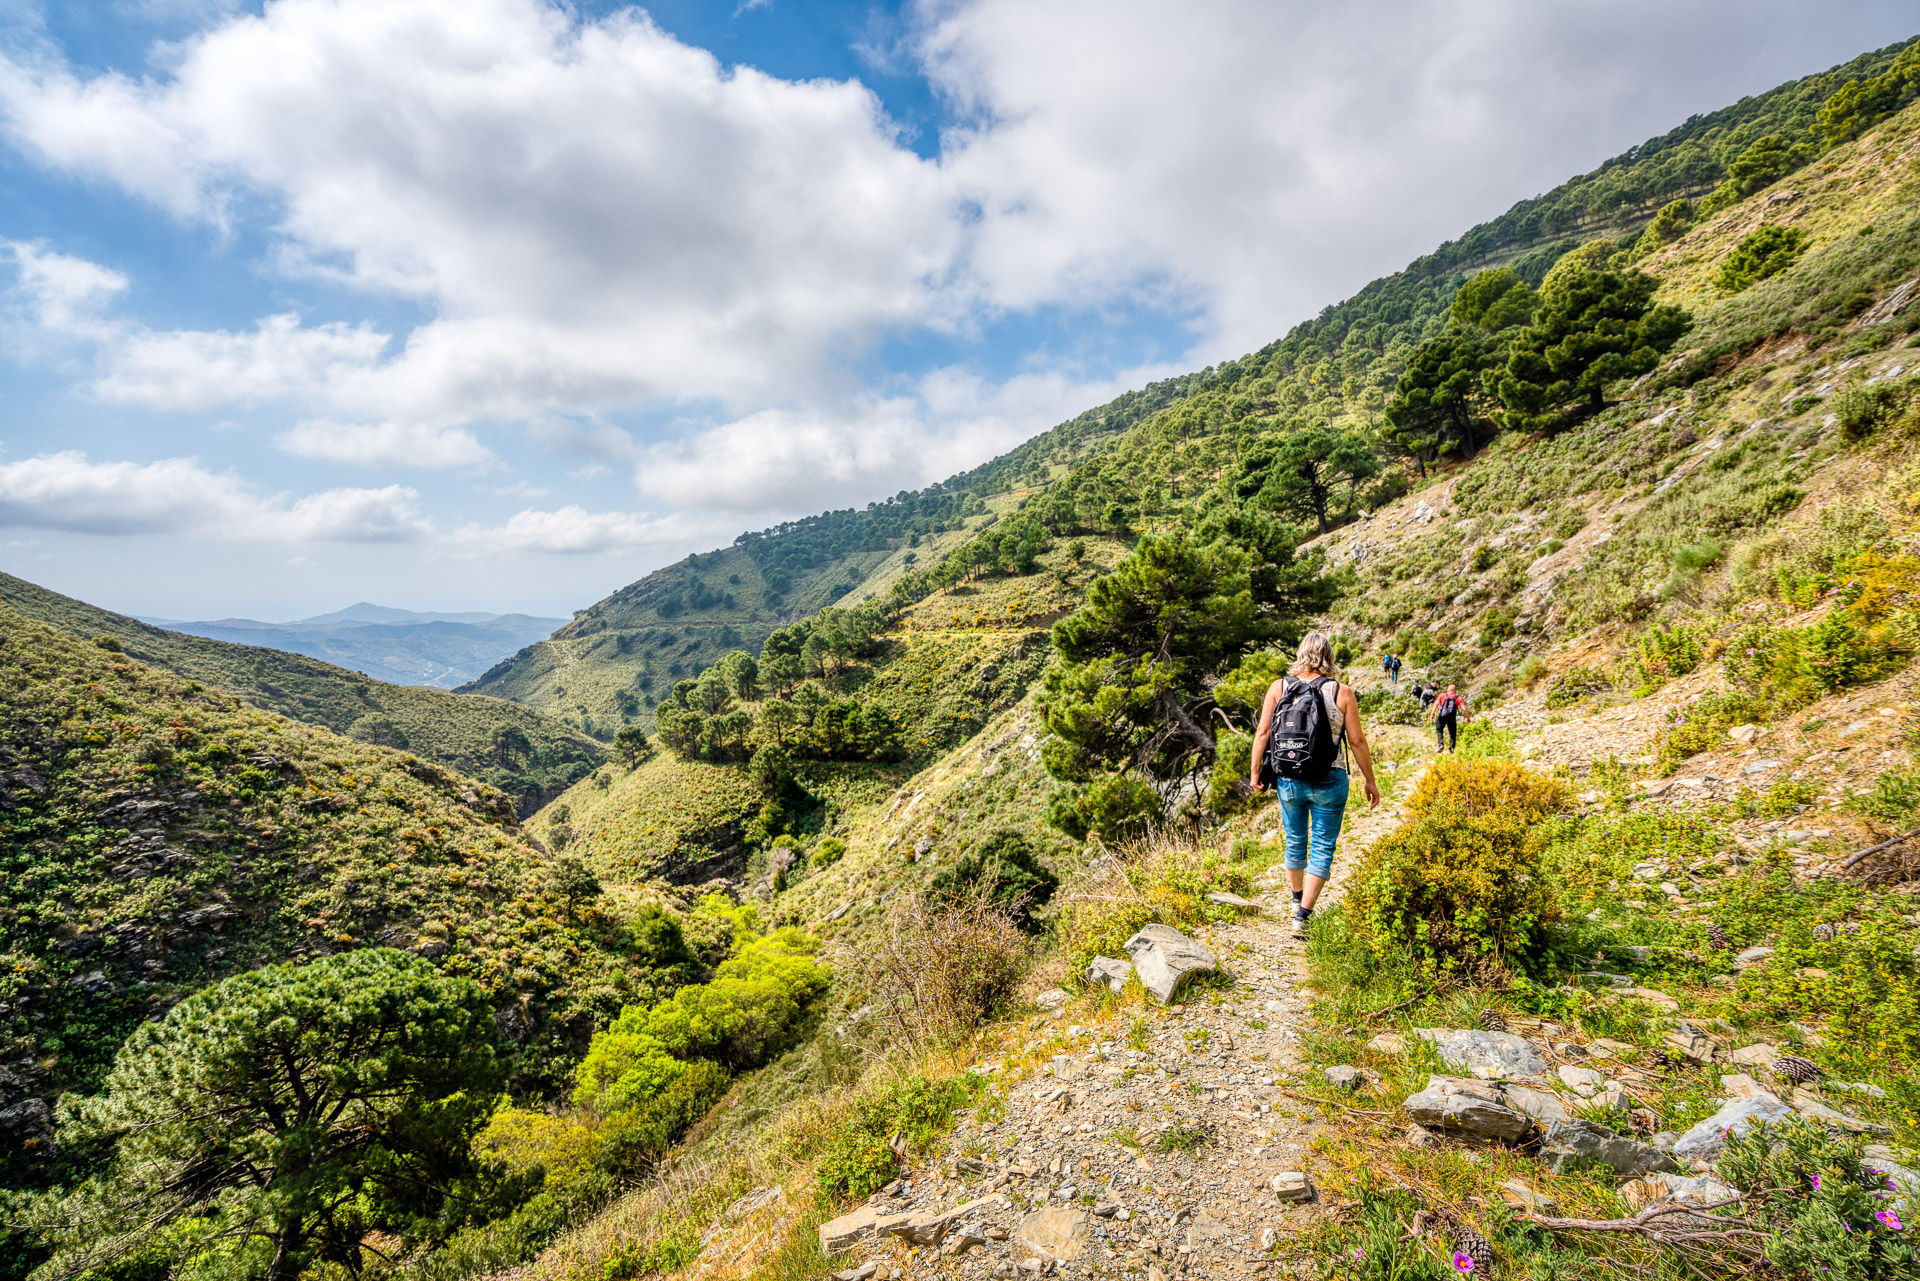 Mountain landscape in Andalucia, Spain.  Tags: Andalucia, Spain, Malaga, mountain, hiking, landscape